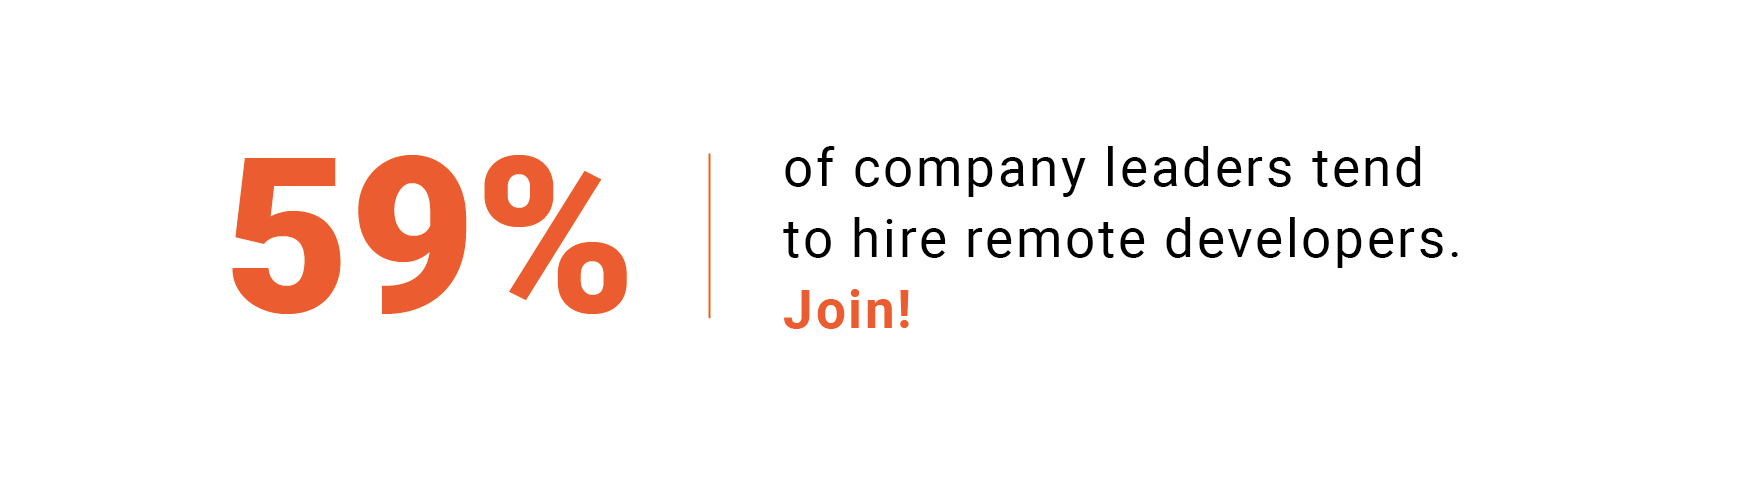 59% of company leaders tend to hire remote software developers